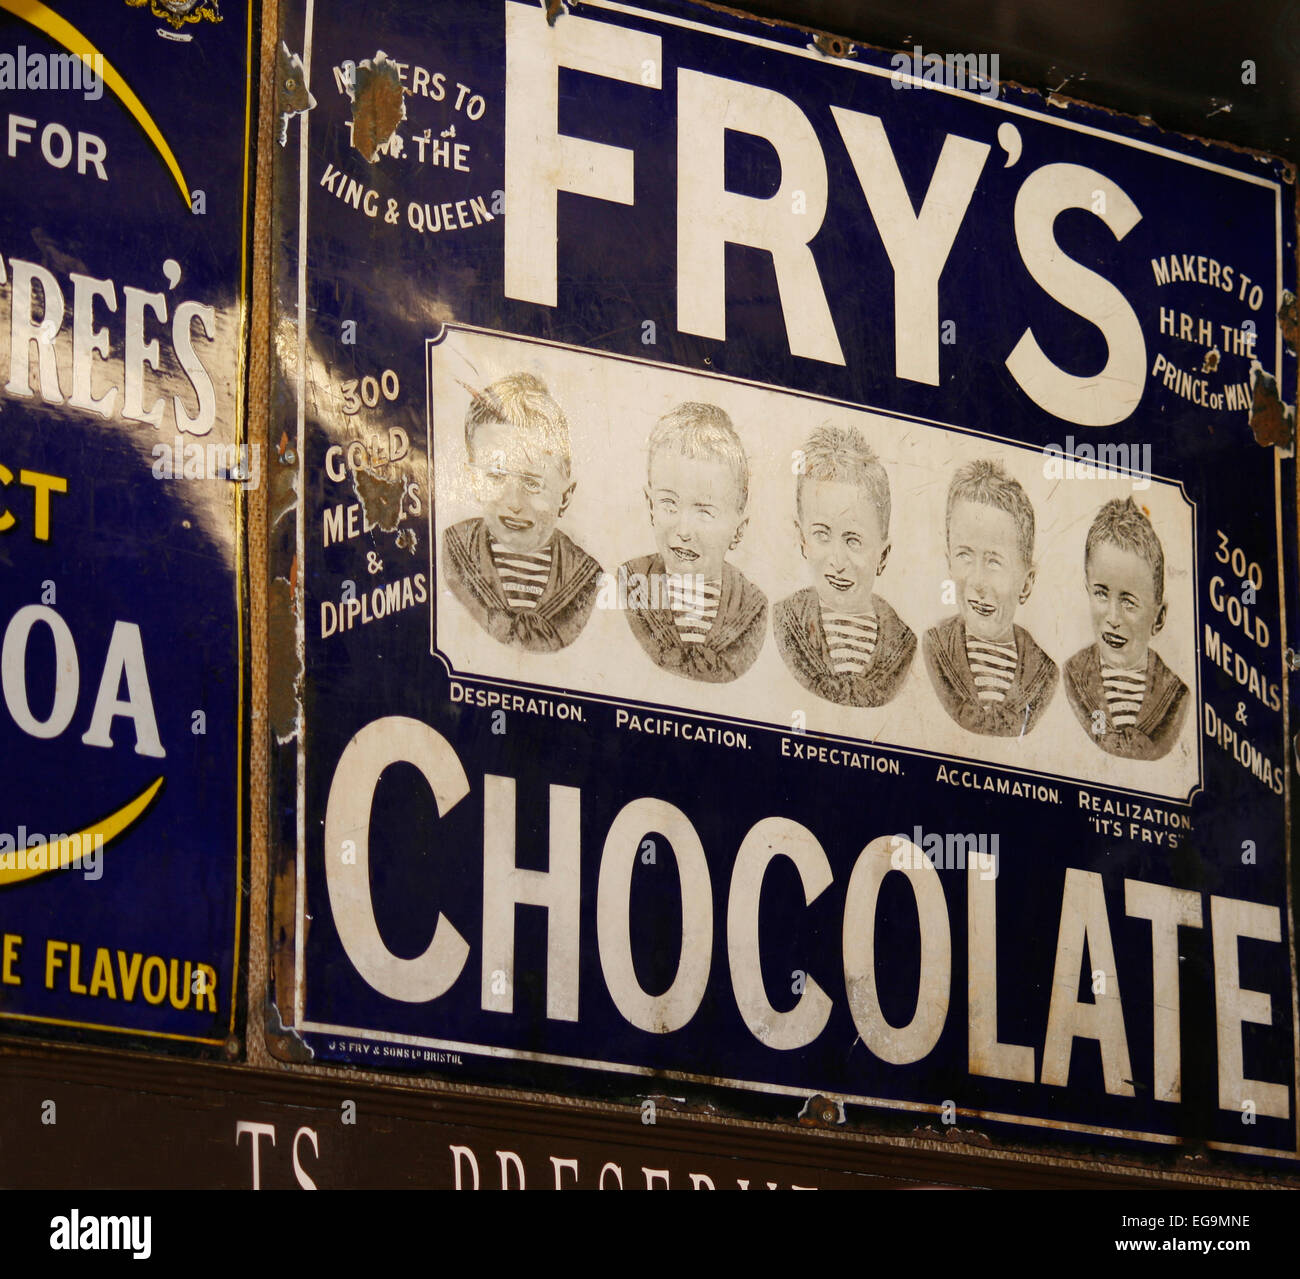 Vintage Metal Sign Advertising Frys Five Boys Chocolate At